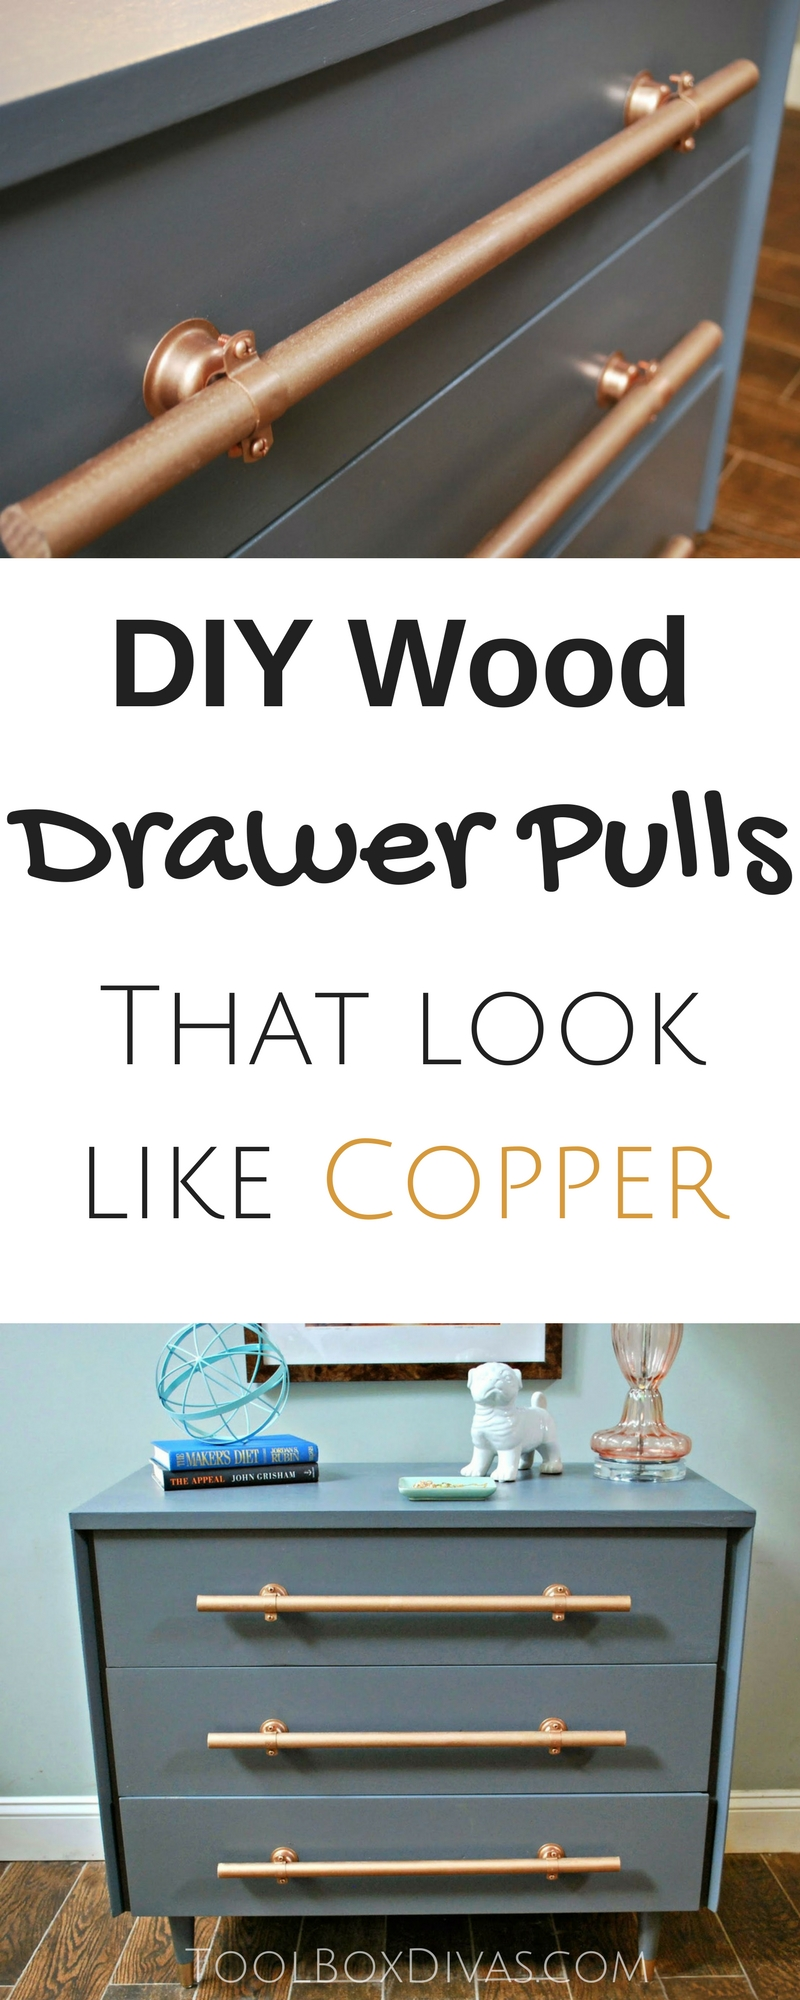 Inexpensive Drawer pulls you can make out of wood that look like copper. This hardware hack can save you tons the next time you makeover furniture or cabinets. Makeover dresser bought for $19 at the thrift store#ToolboxDivas #Furnituremakeover #Furnitureflip #Thriftstore #Dresser Cool and best furniture and cabinet hardware